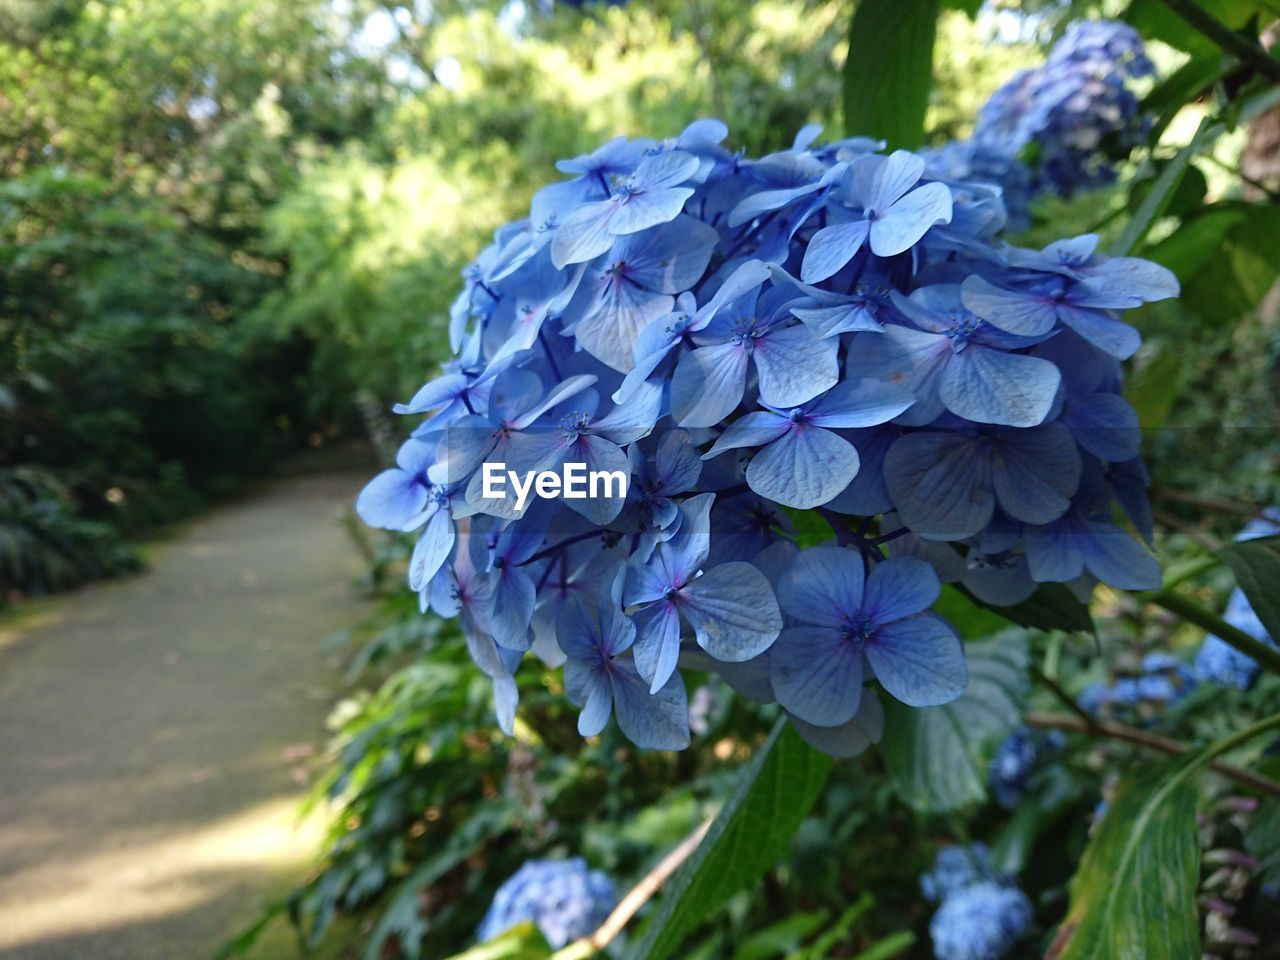 flower, flowering plant, plant, vulnerability, fragility, beauty in nature, purple, freshness, petal, inflorescence, close-up, blue, flower head, growth, hydrangea, nature, focus on foreground, day, no people, selective focus, outdoors, springtime, bunch of flowers, lilac